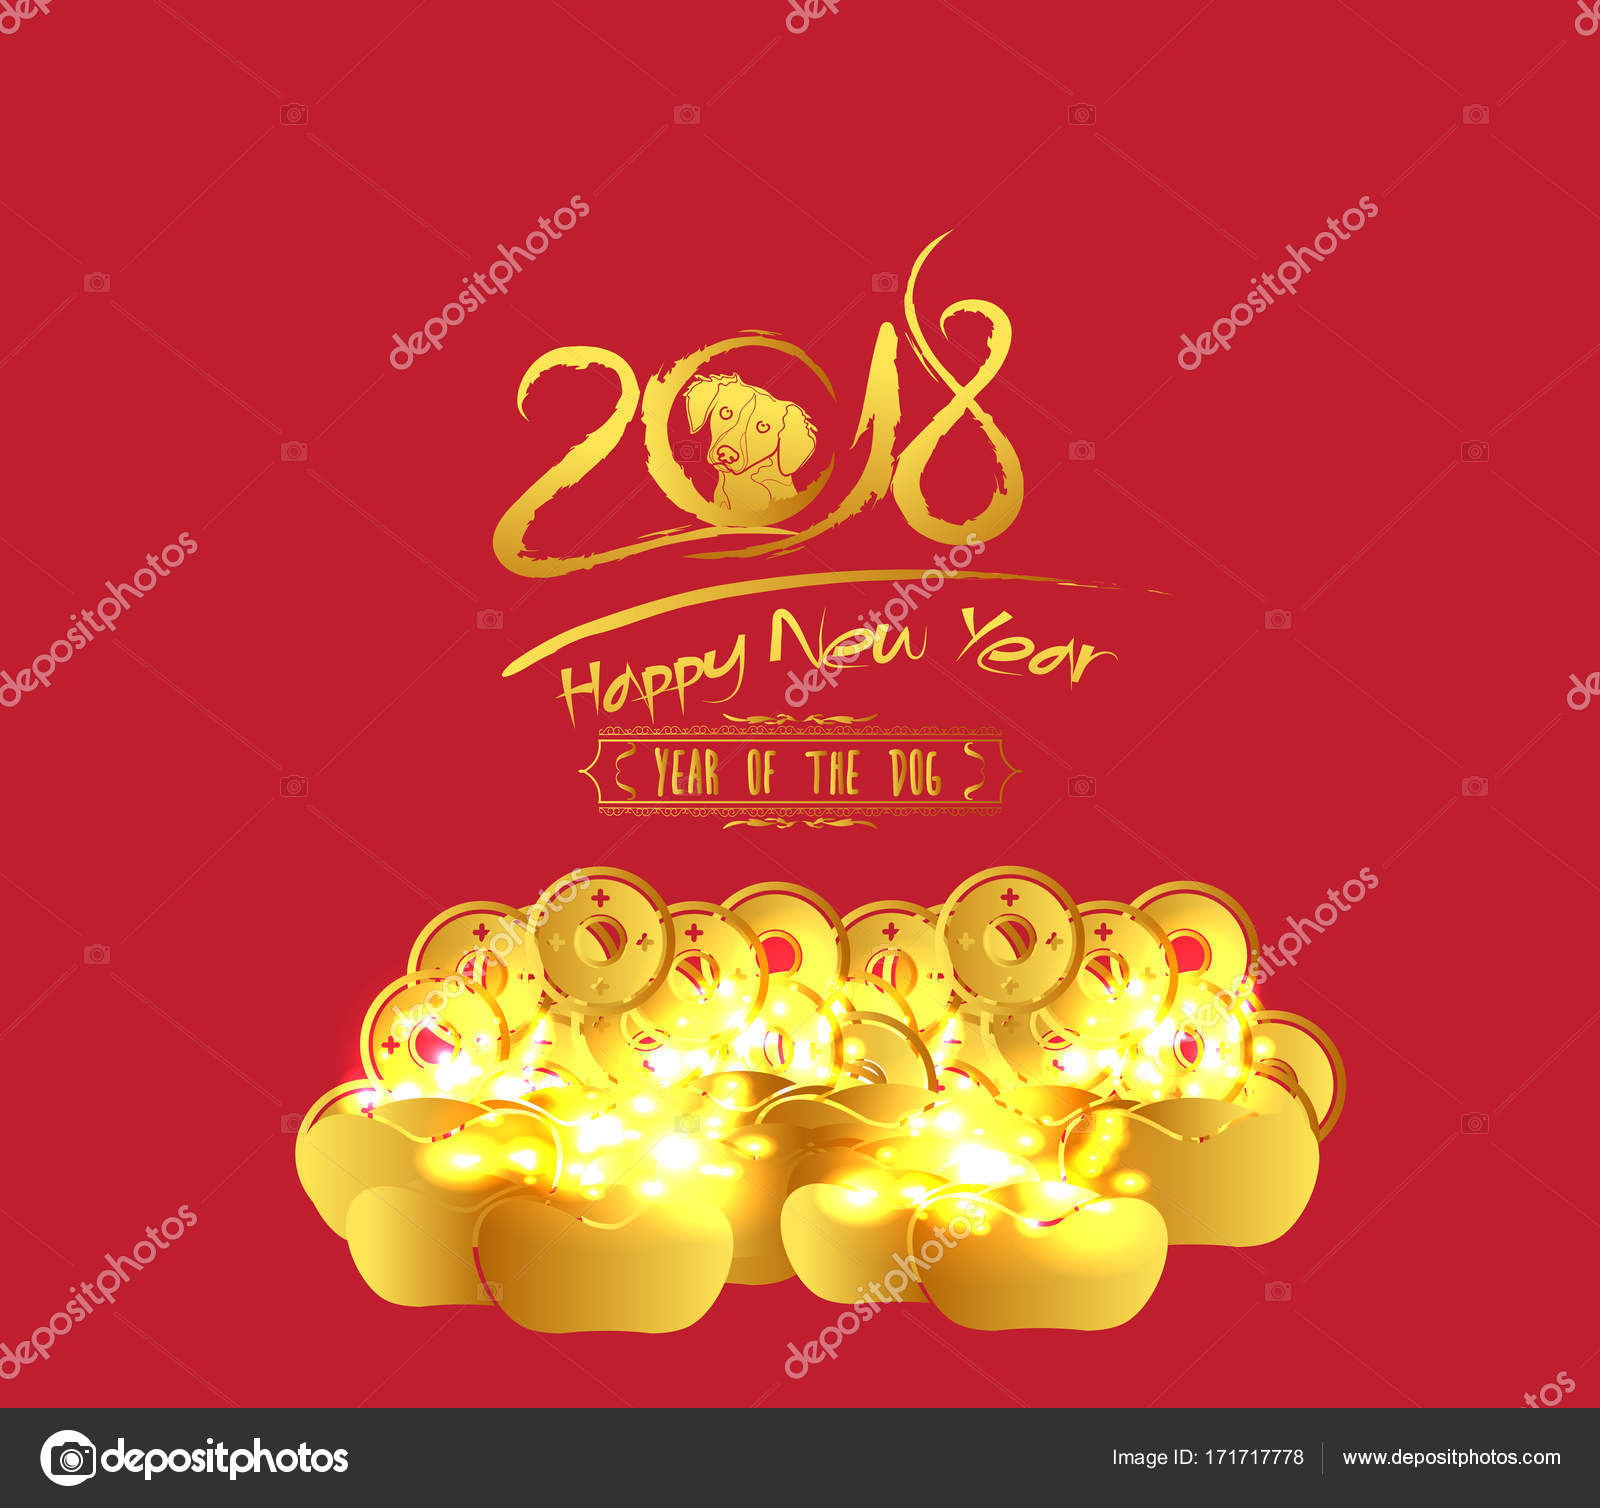 chinese new year 2018 golden coin and red packet background year of the dog